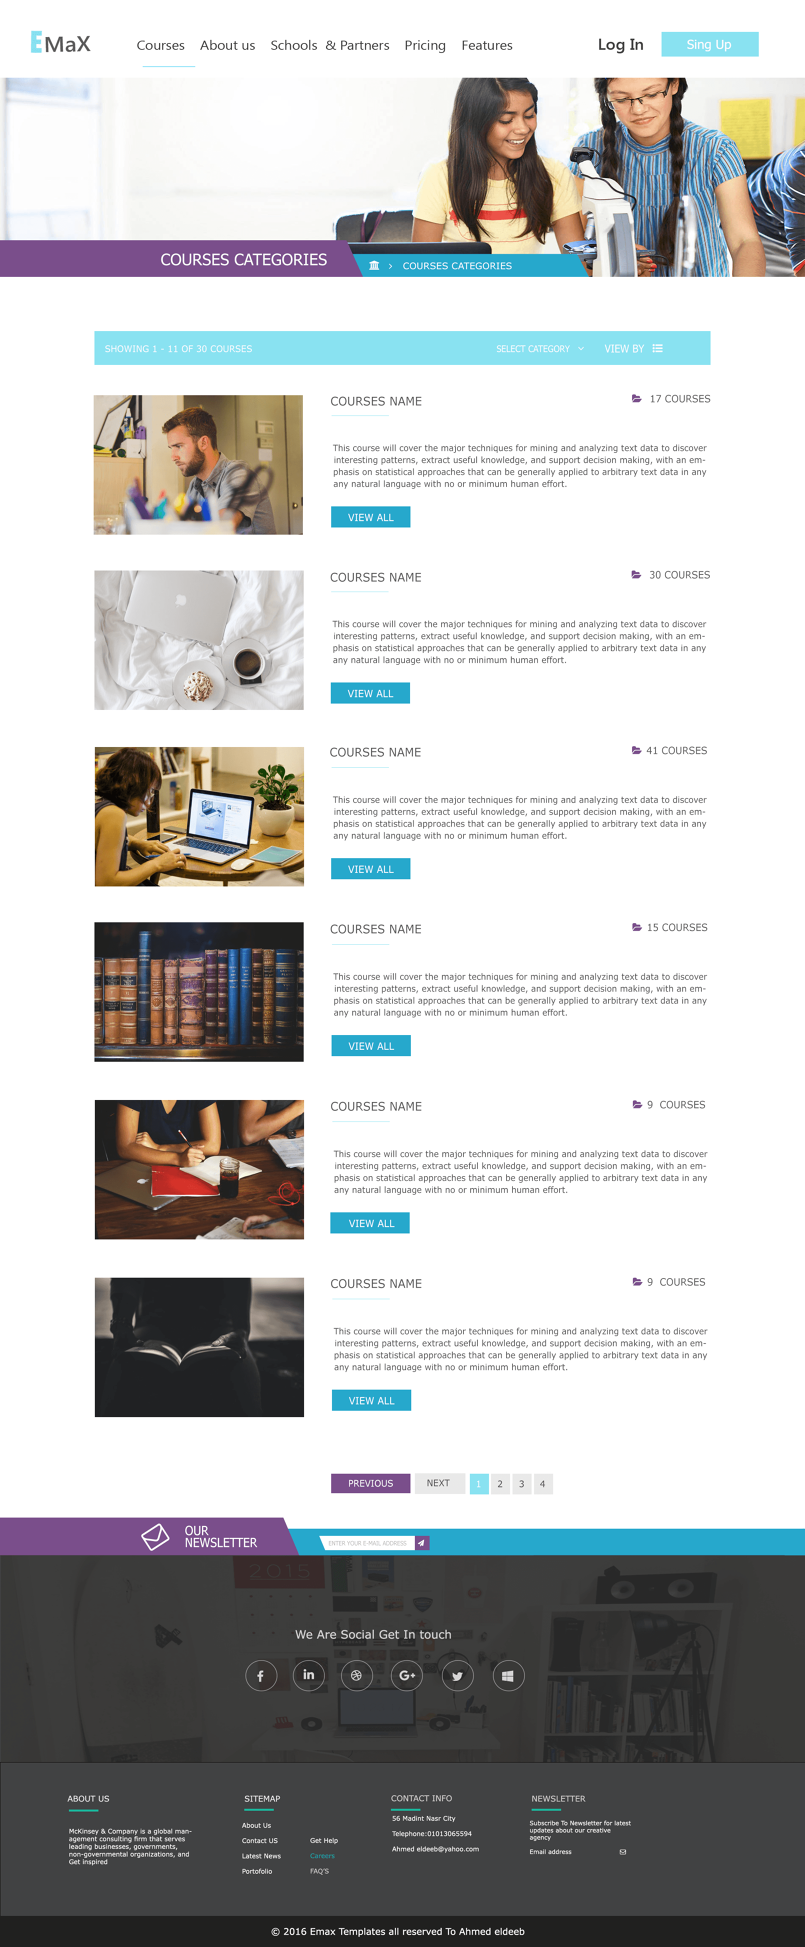 Emax courses -website template